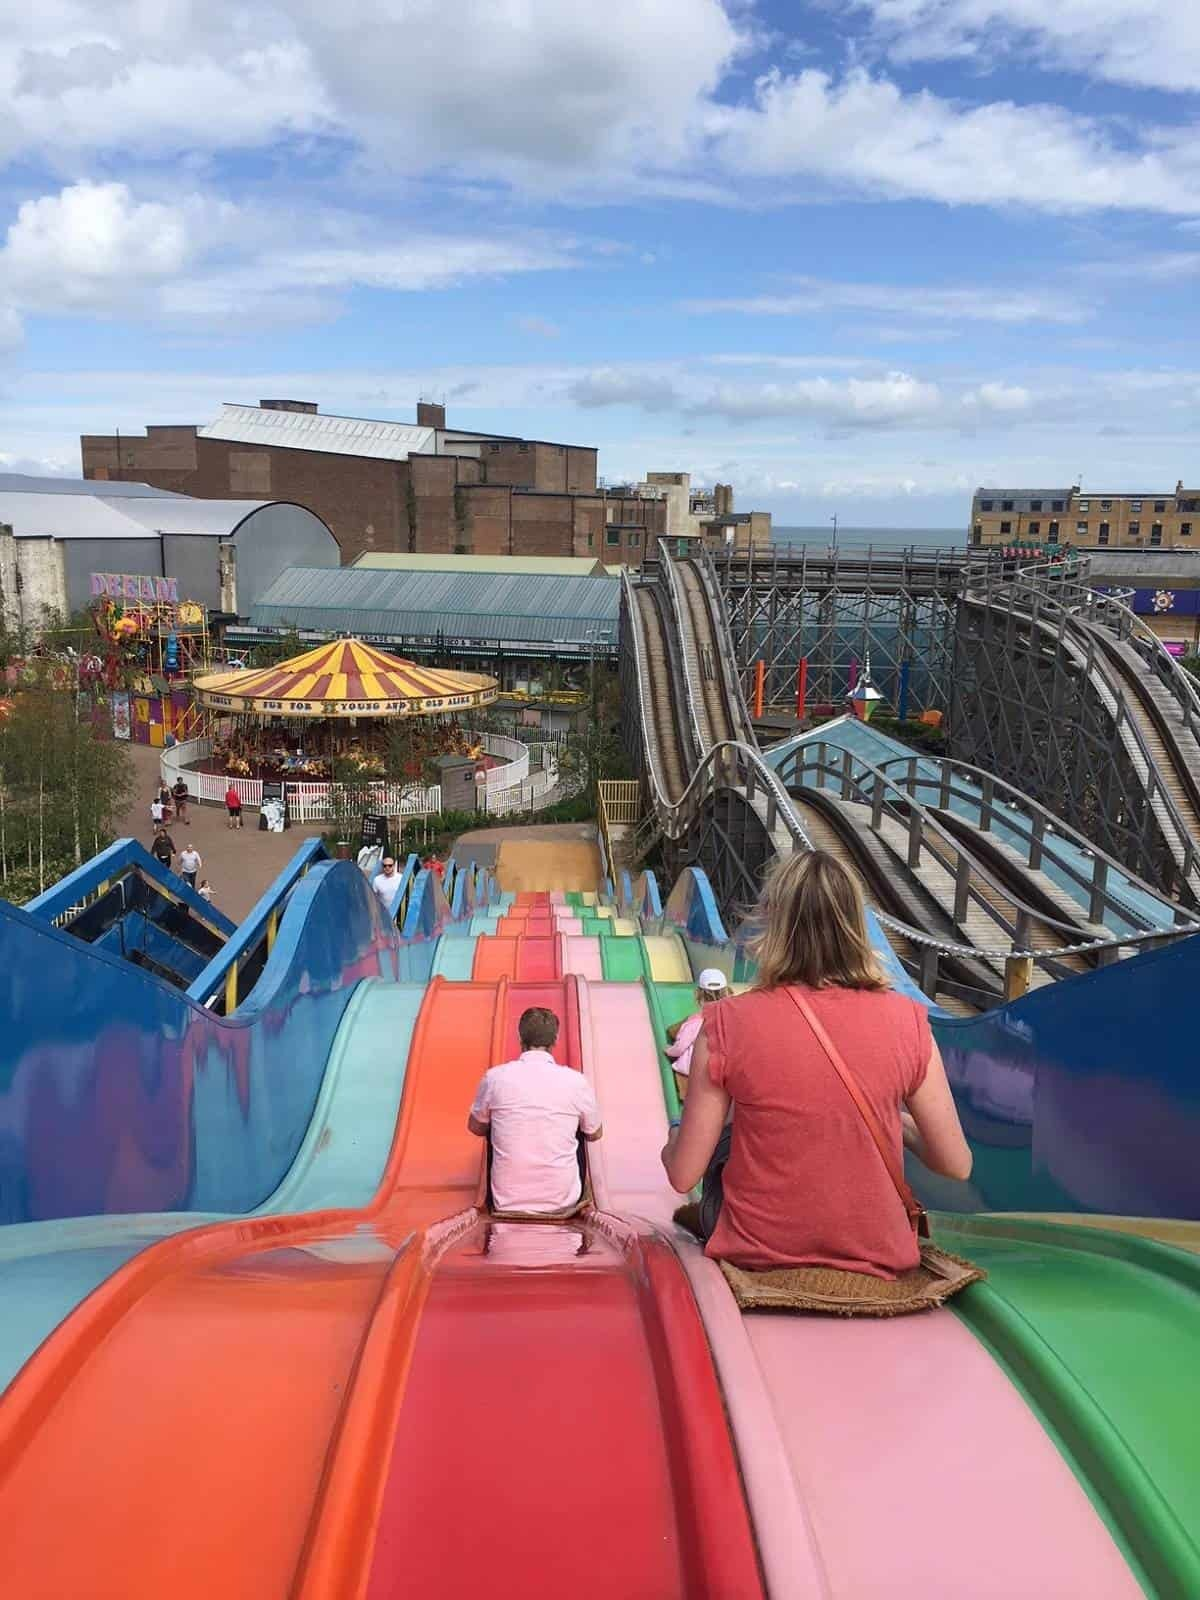 Born Slippy ride at Dreamland